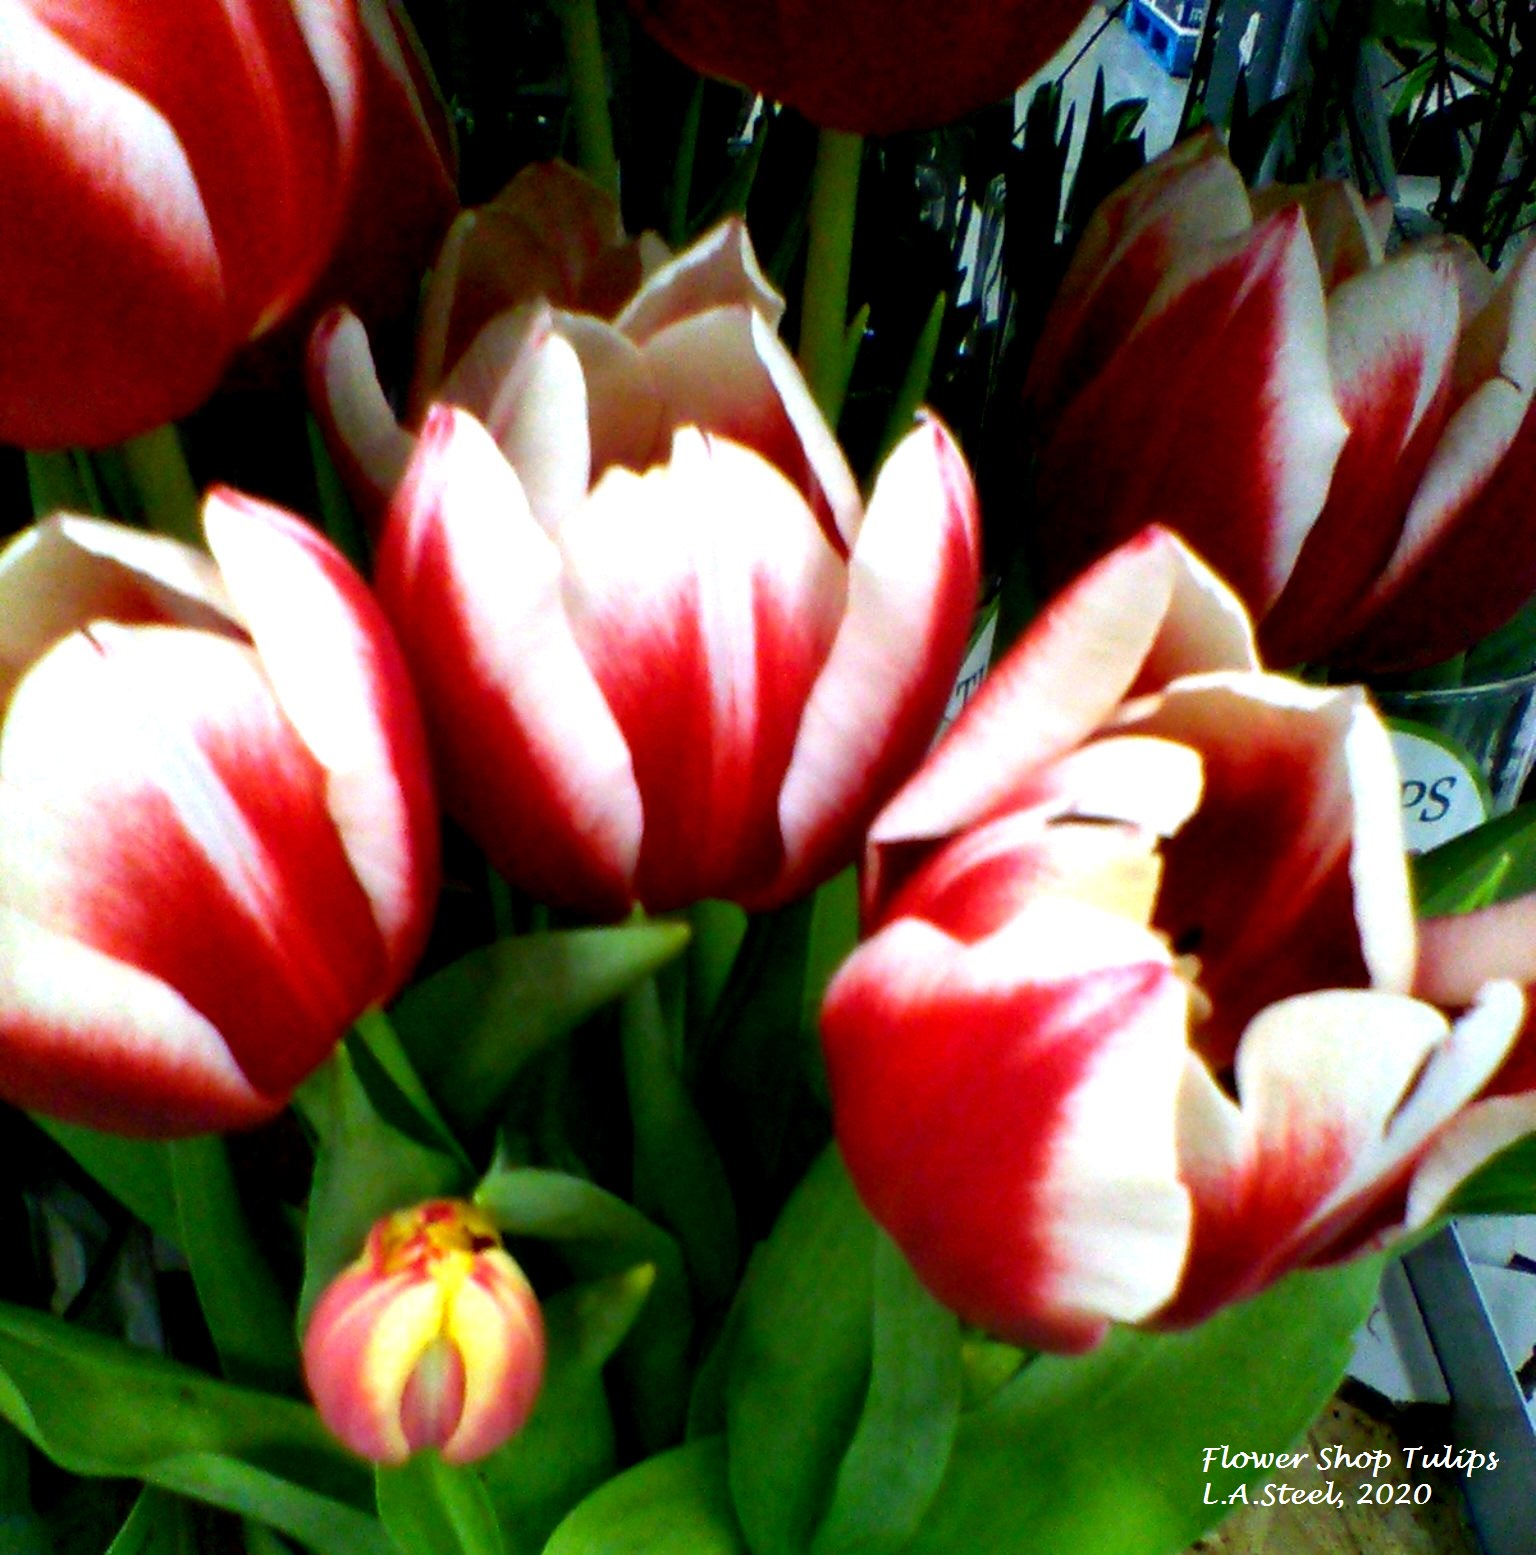 flower shop tulips 7 2020